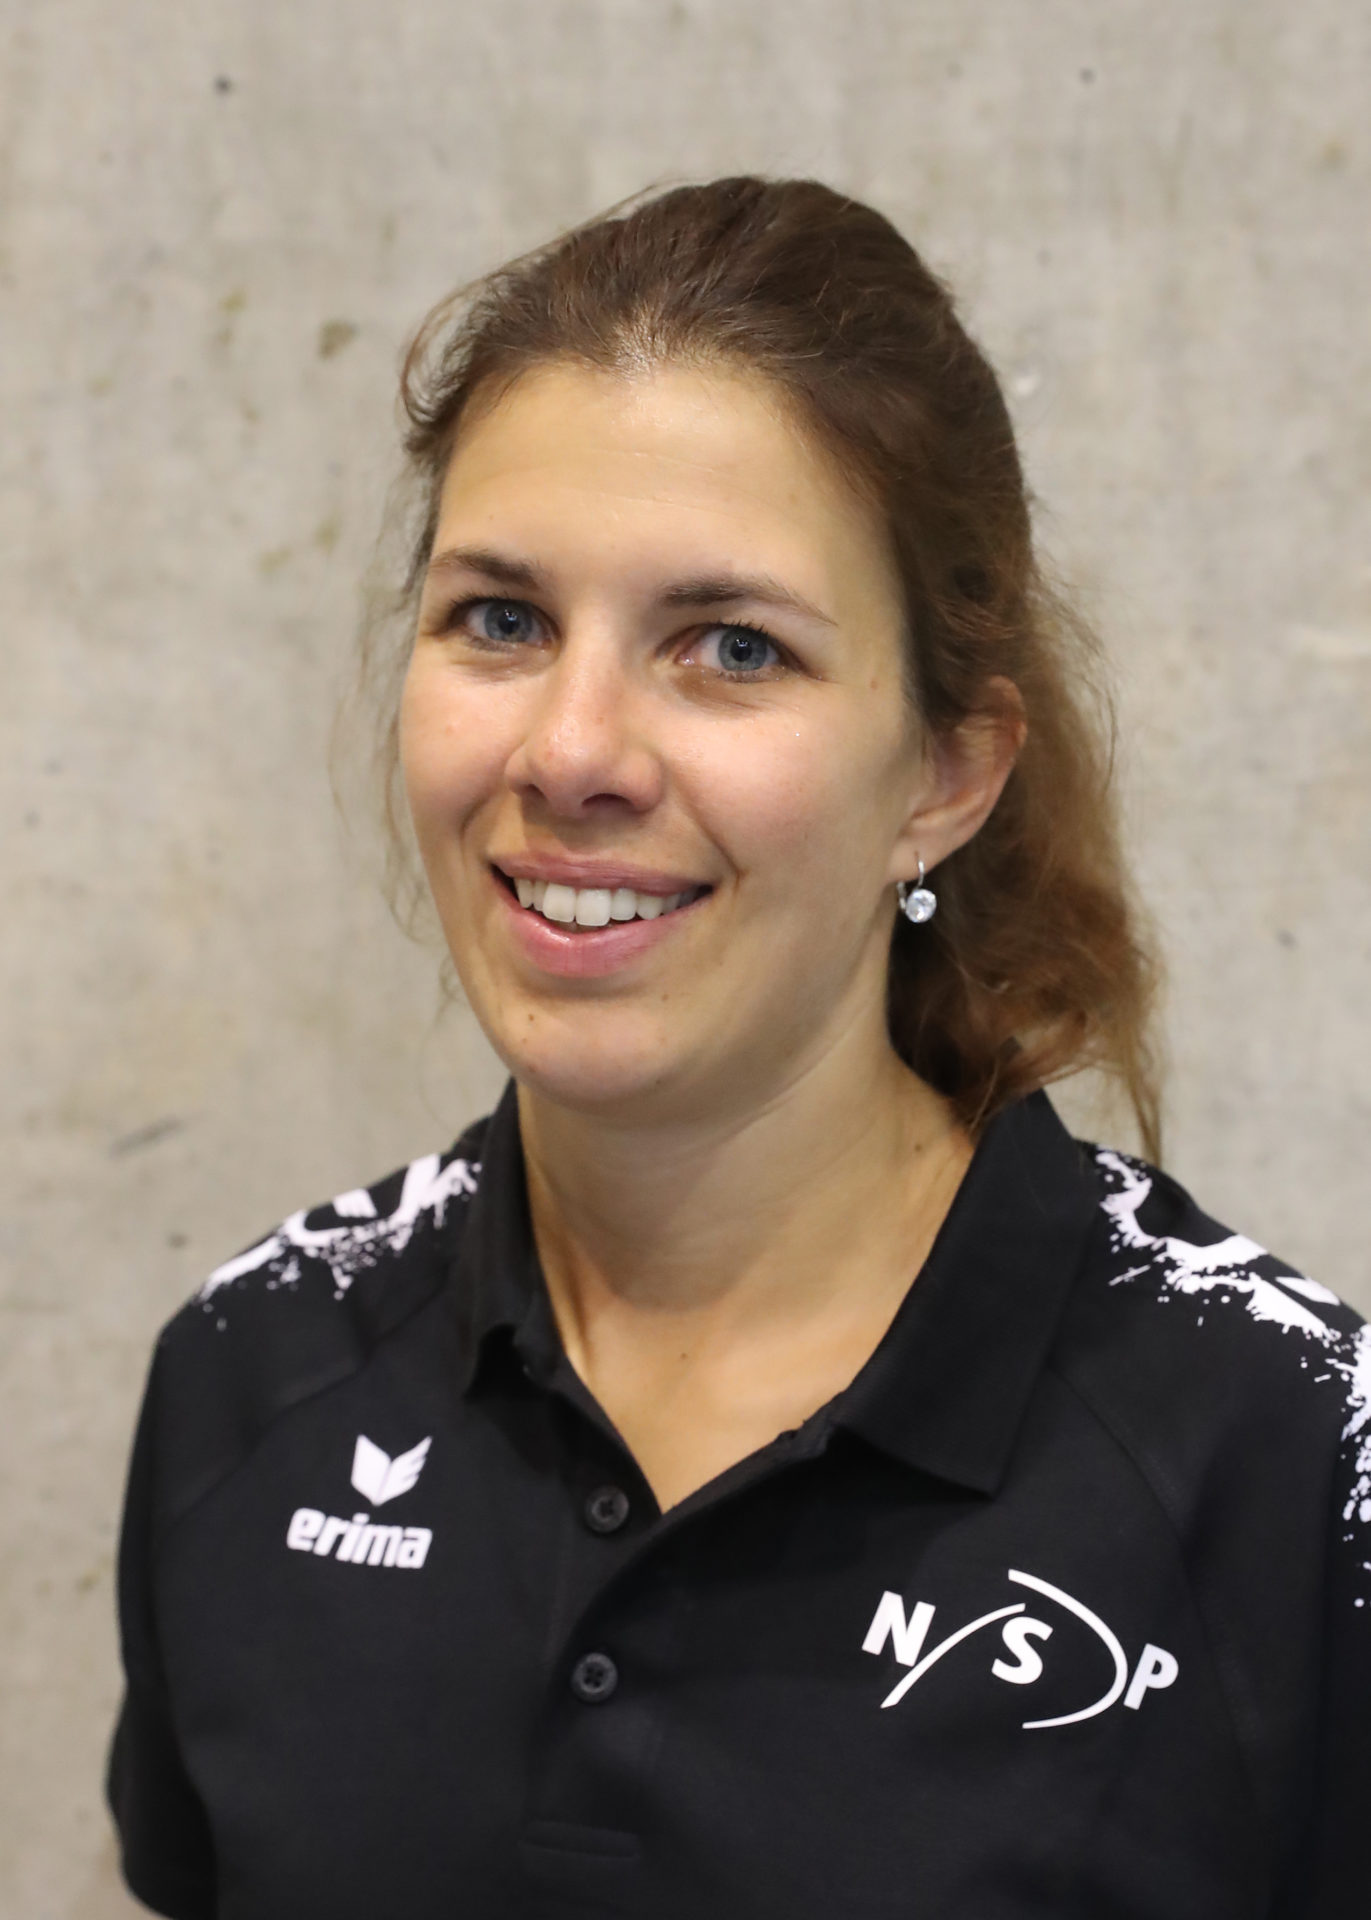 2019 Volleyball Schiebli Fiona